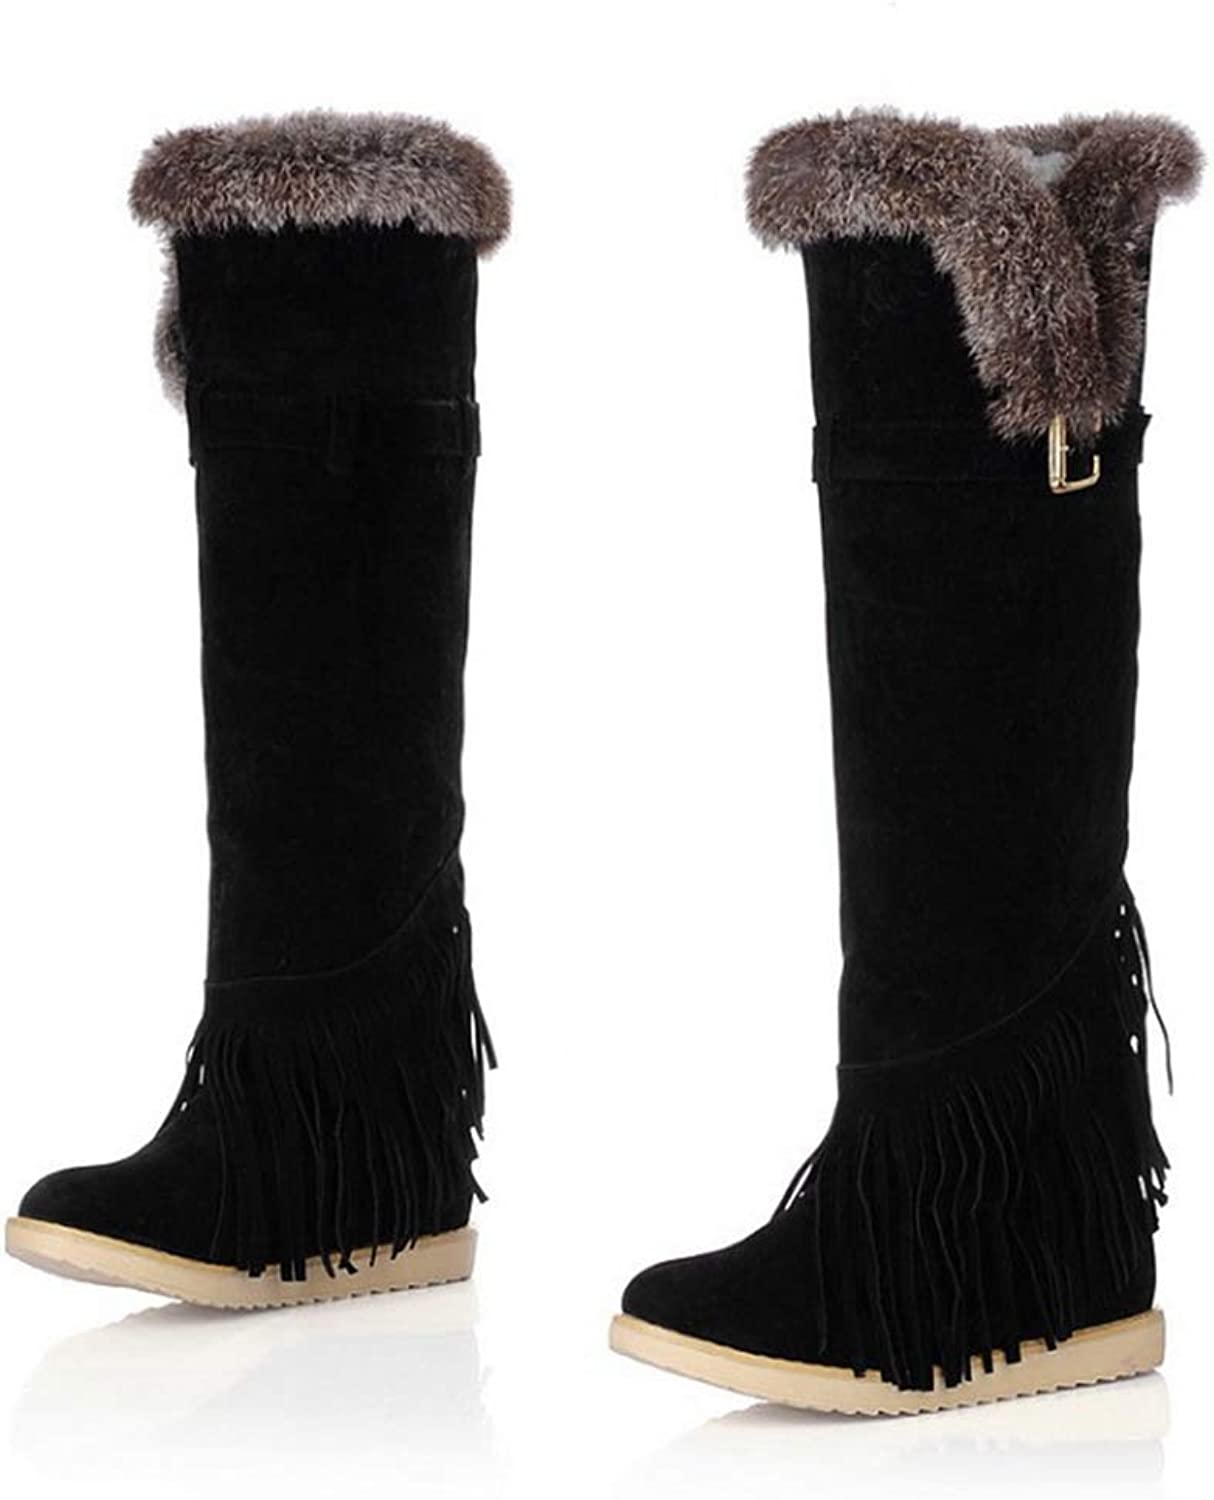 Hoxekle Snow Boots Women Flats Over The Knee Thigh High Boots Slip on Buckle Winter Thermal Female Warm Fringed shoes